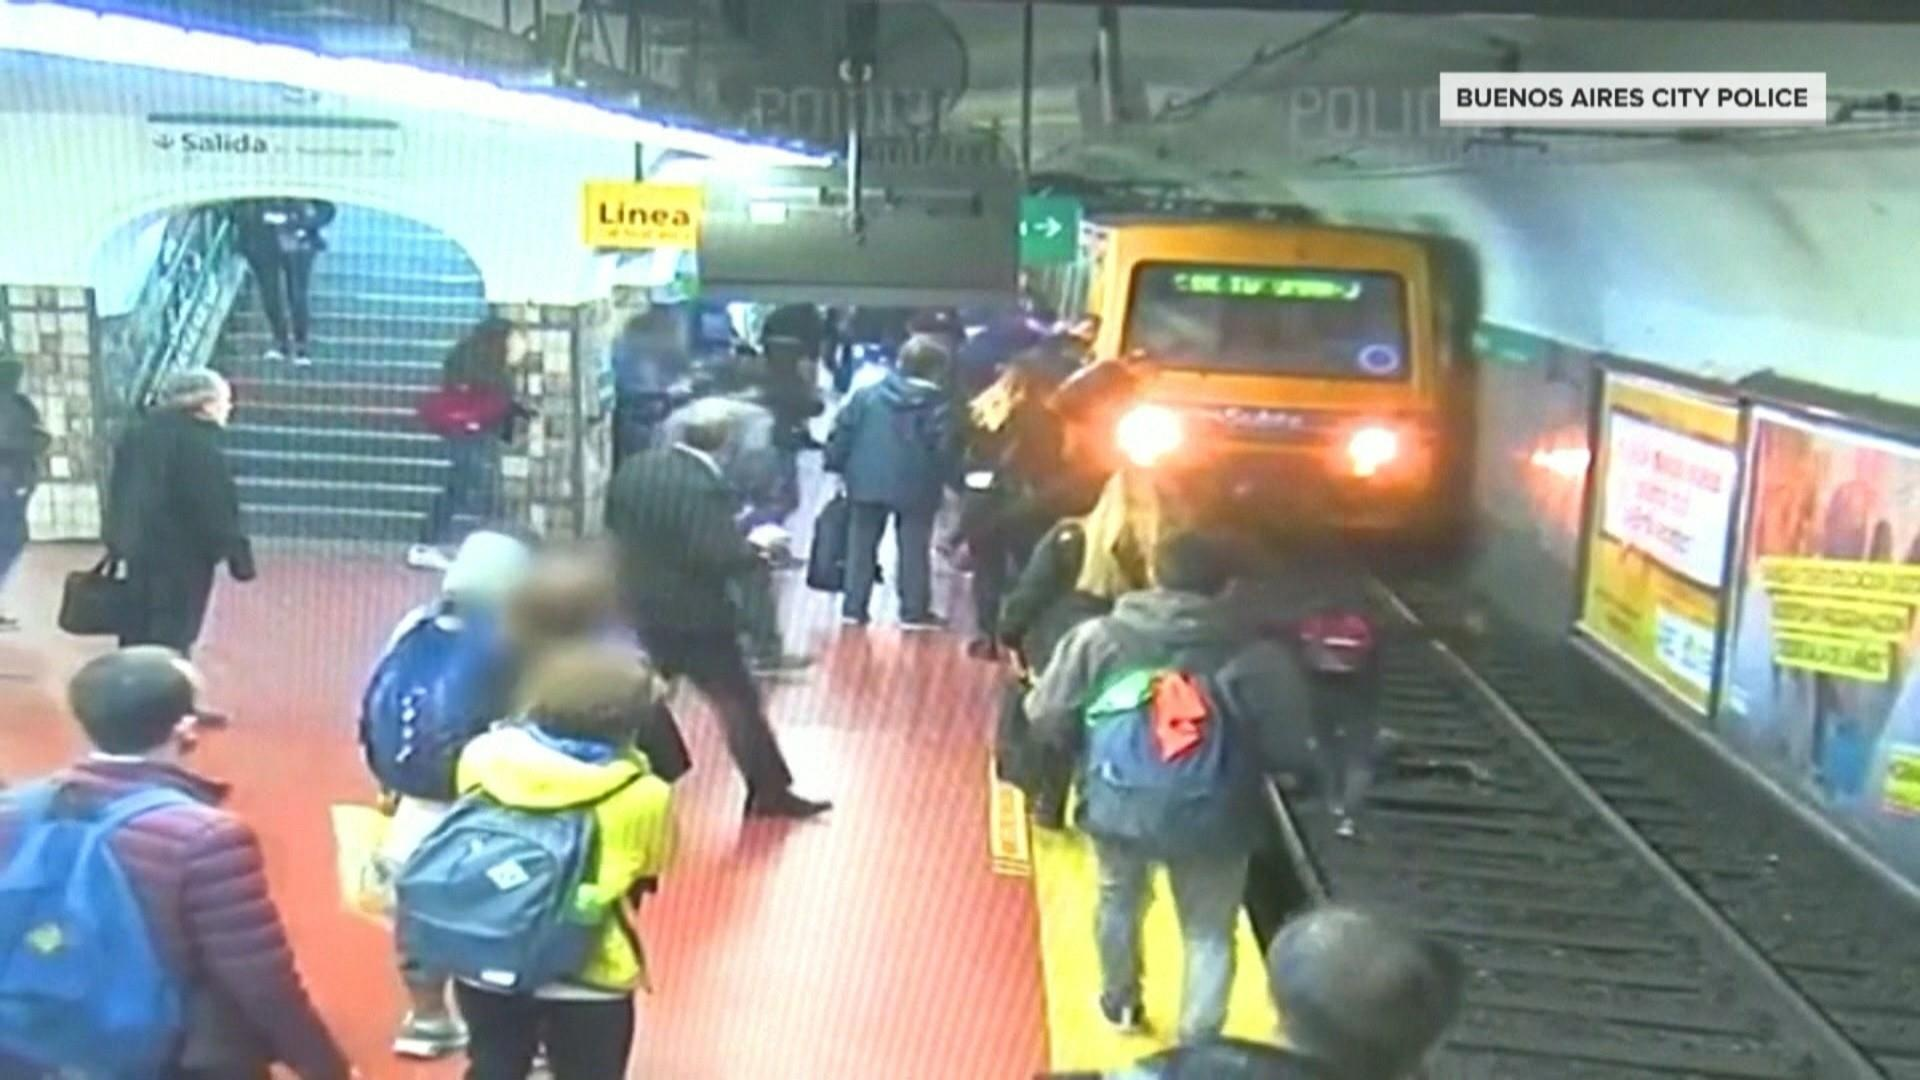 Watch commuters in Argentina help to save woman who falls onto the tracks